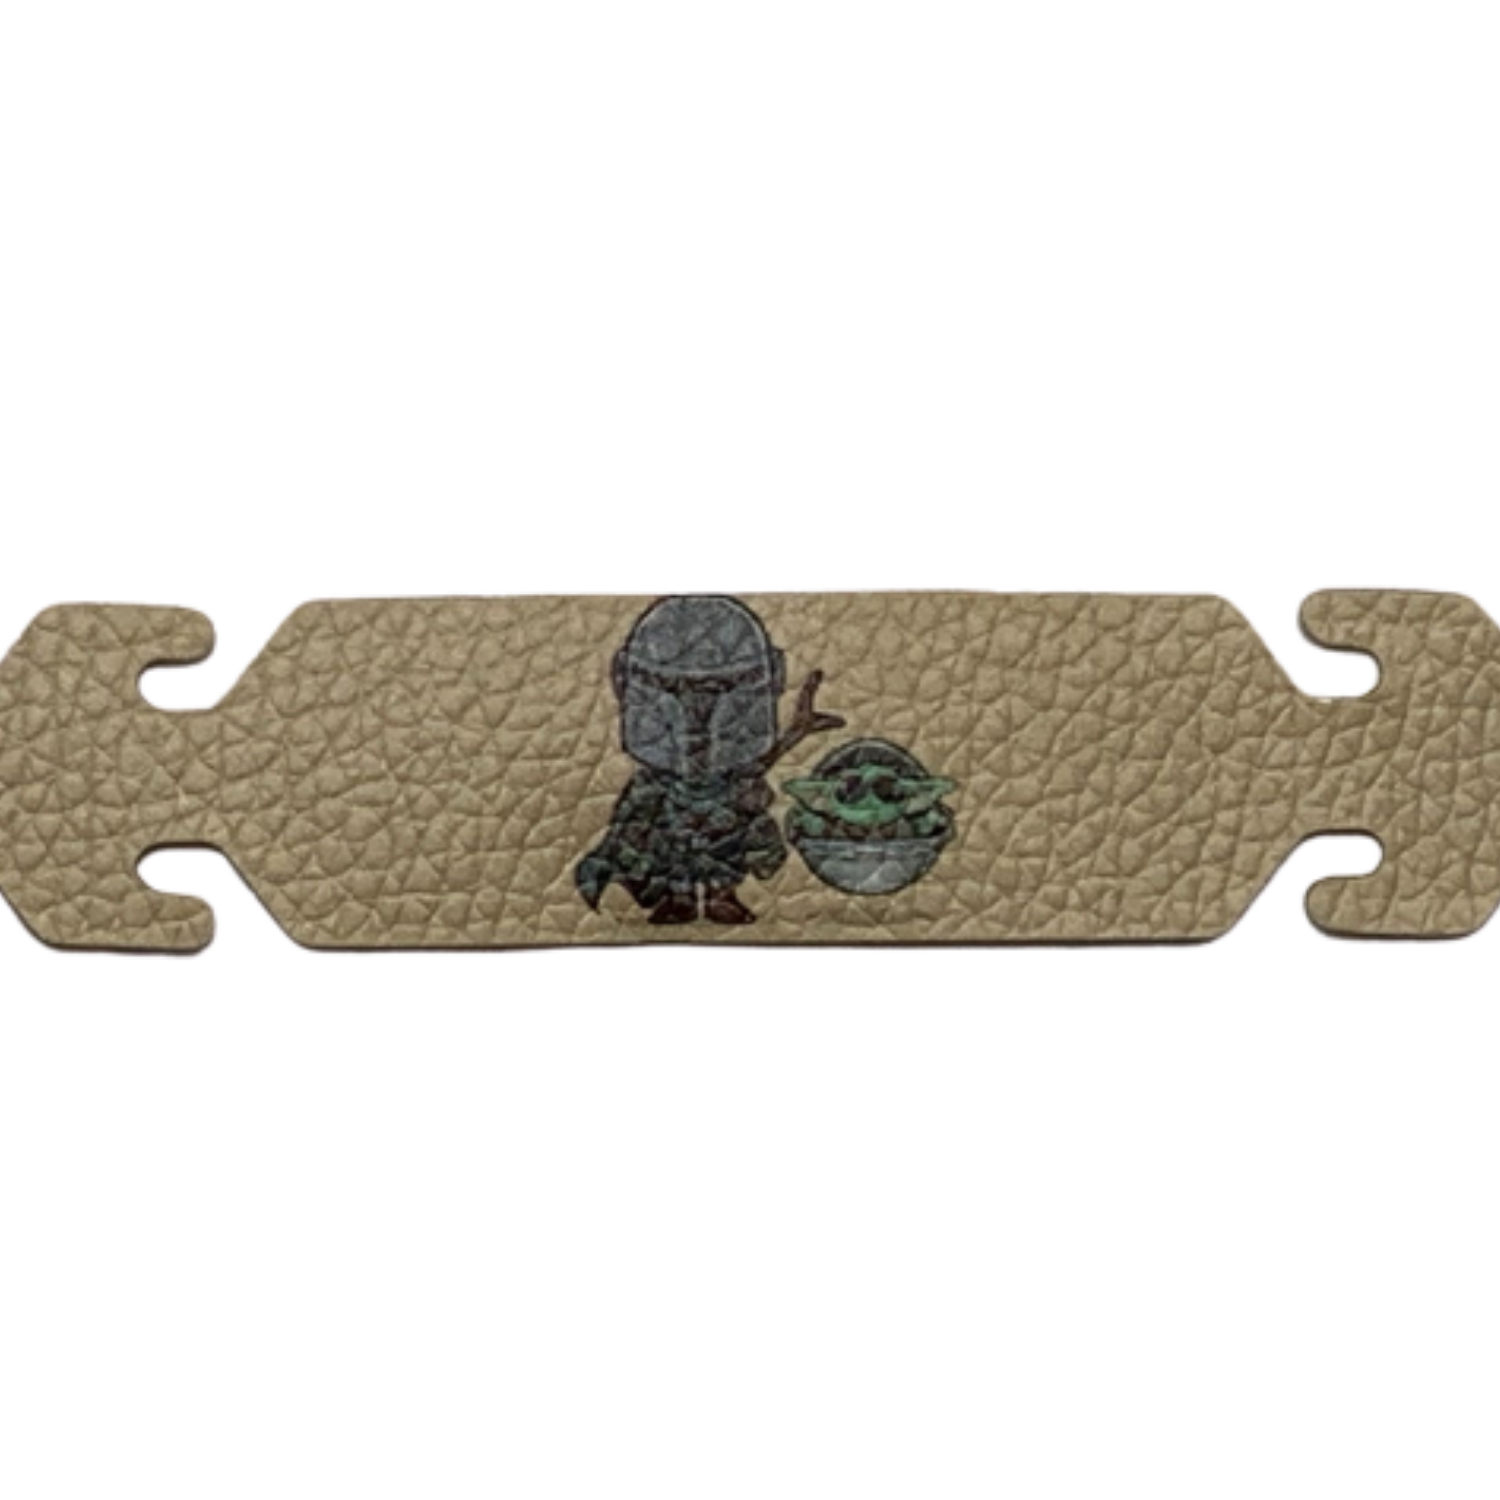 Mandalorian Mask Ear Saver, PU leather